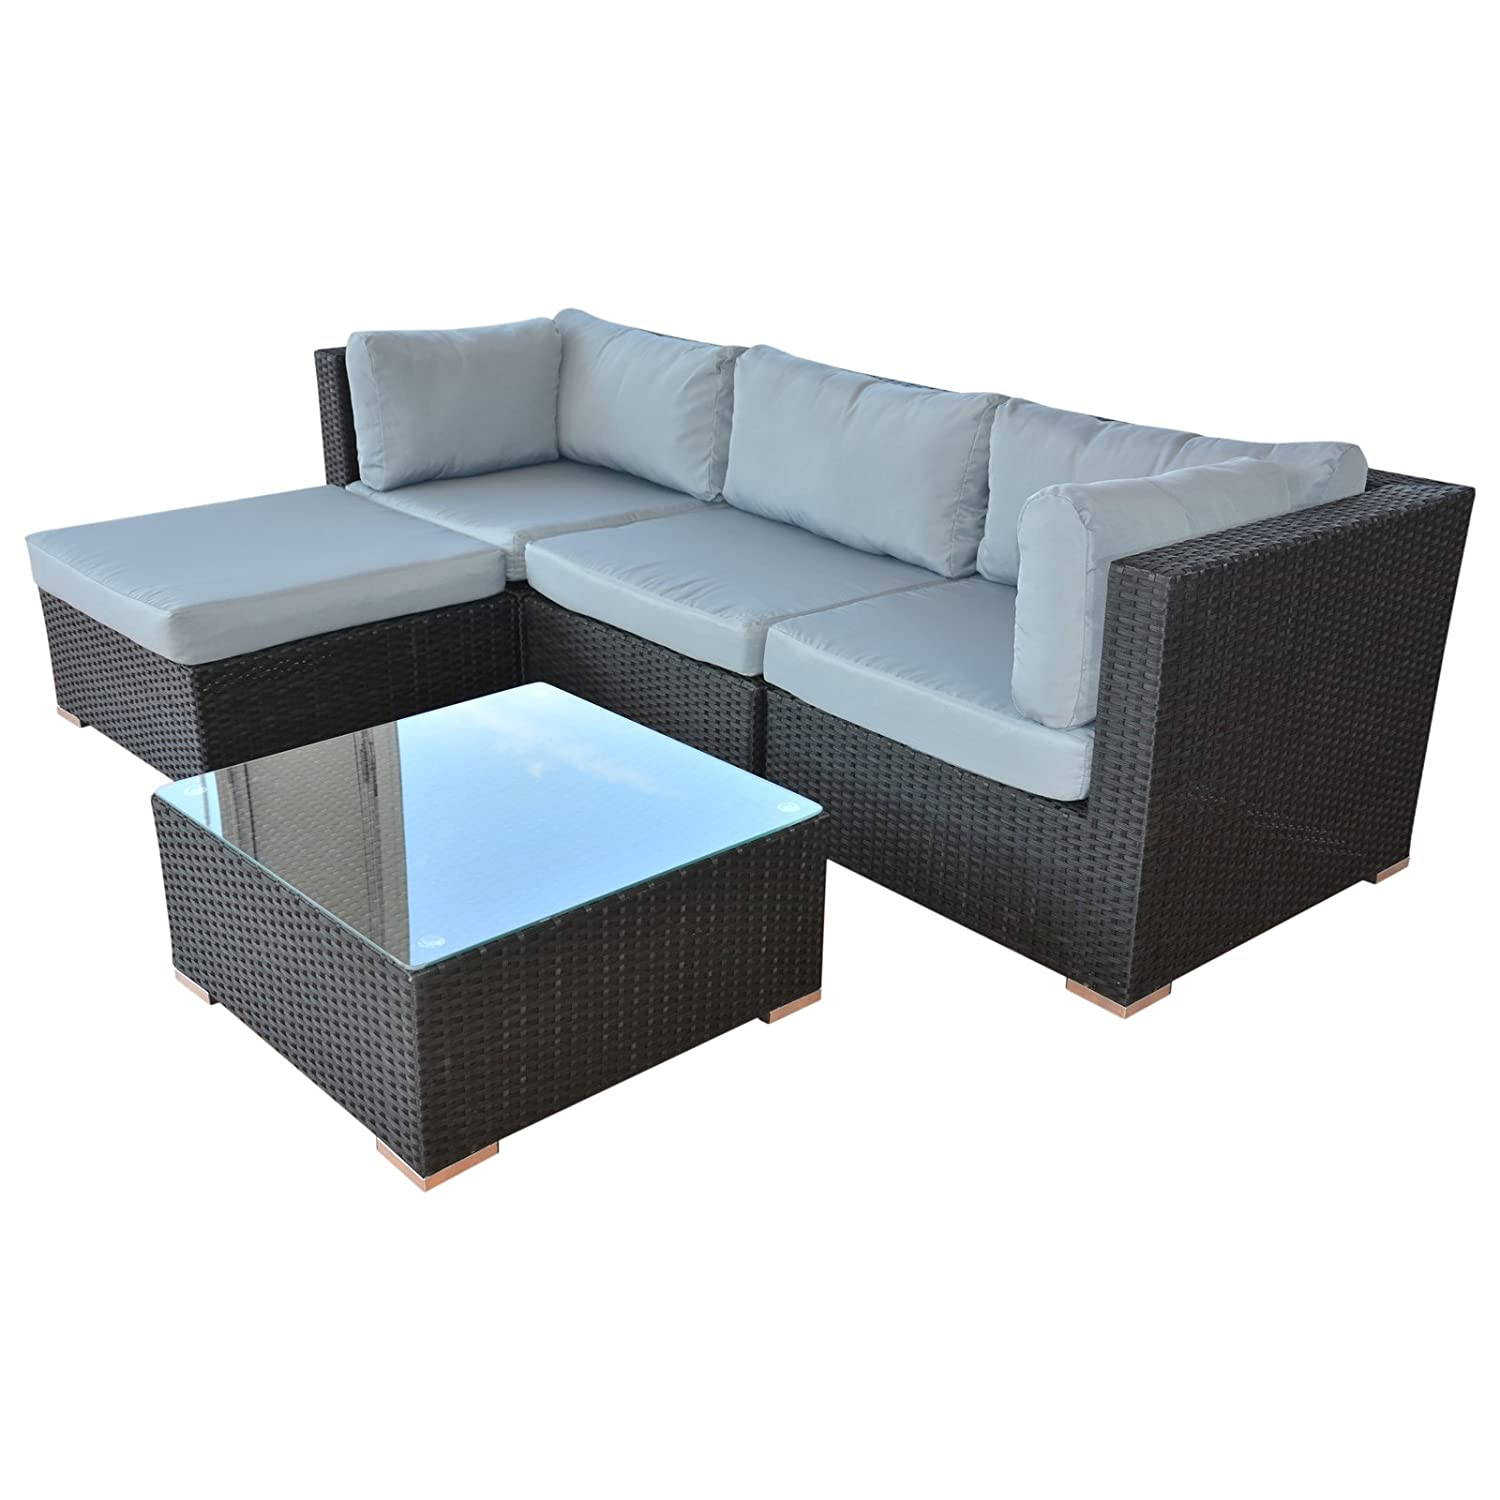 gartenm bel lounge set reduziert no24 hitoiro. Black Bedroom Furniture Sets. Home Design Ideas